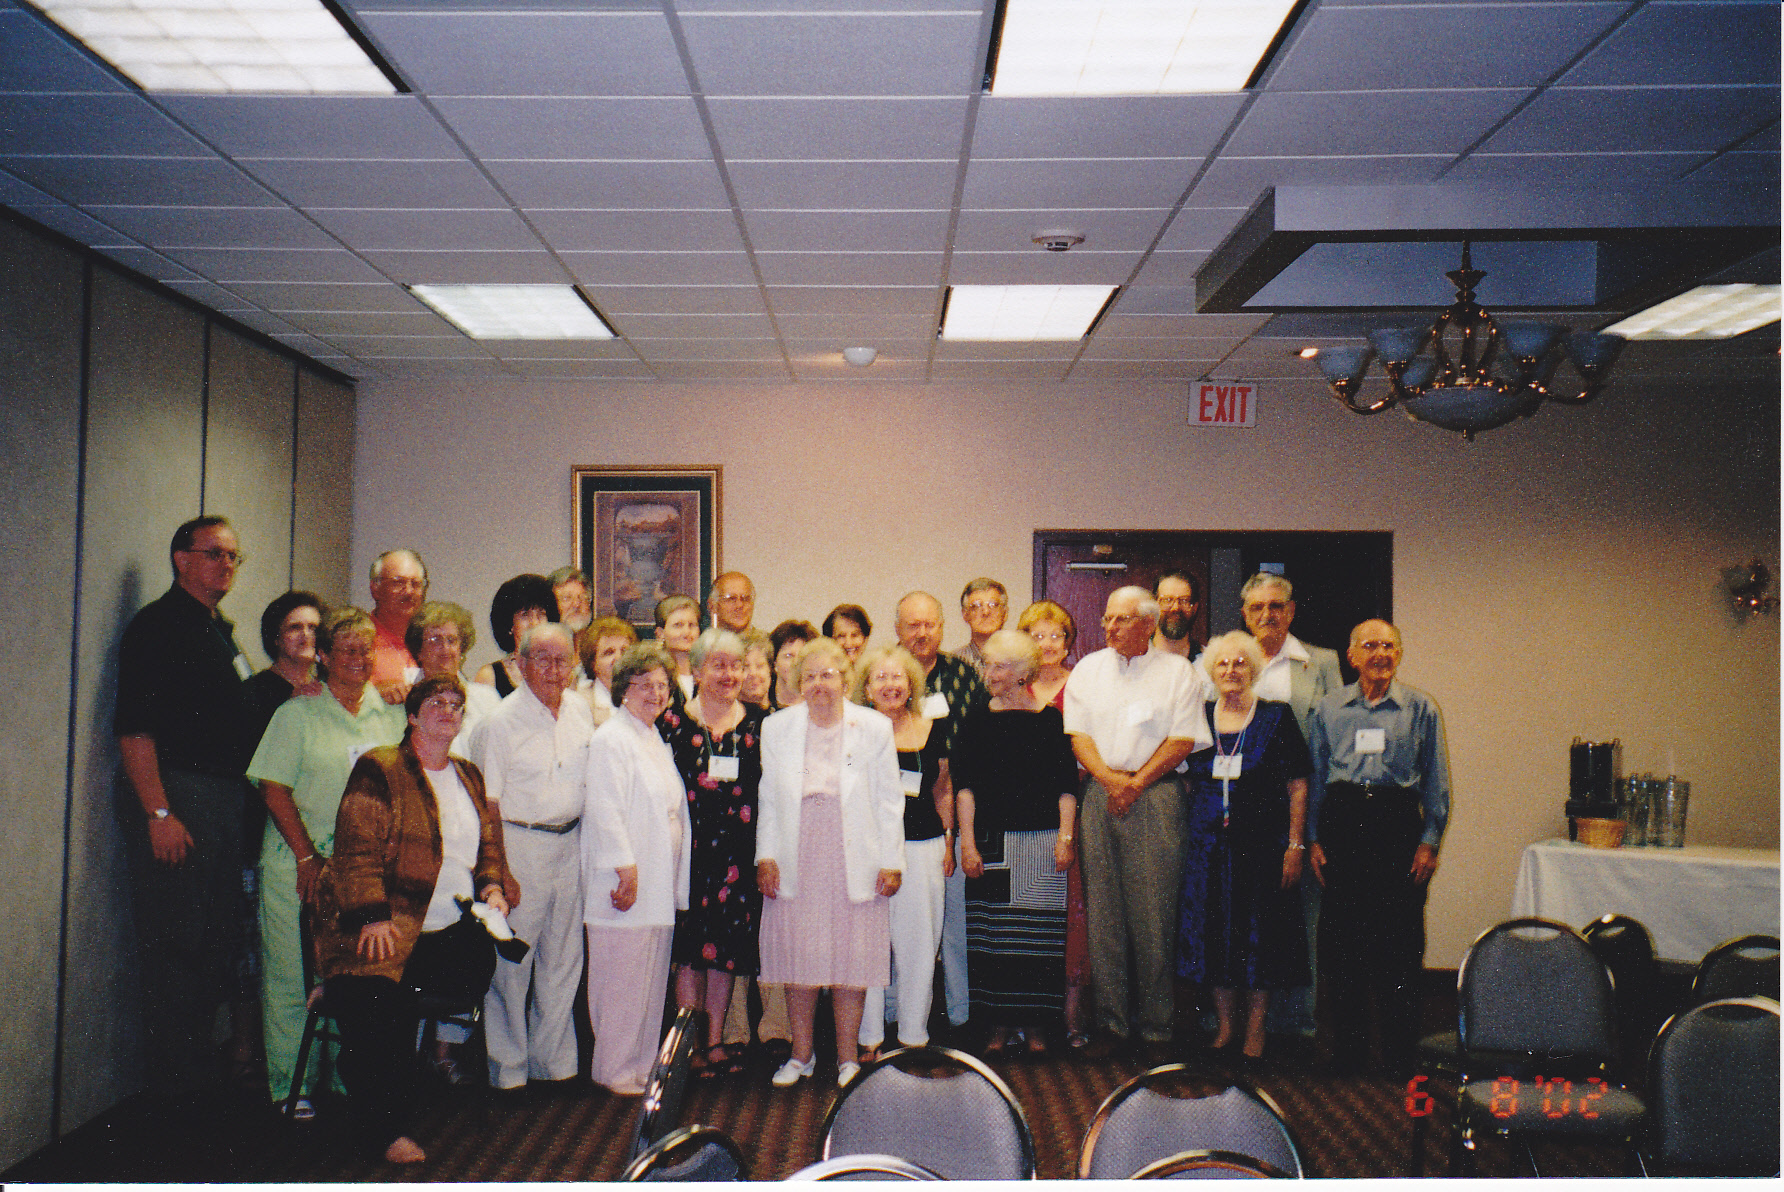 2002 OFHS meeting in Knoxville, TN (Descendants of John Owsley born 1757